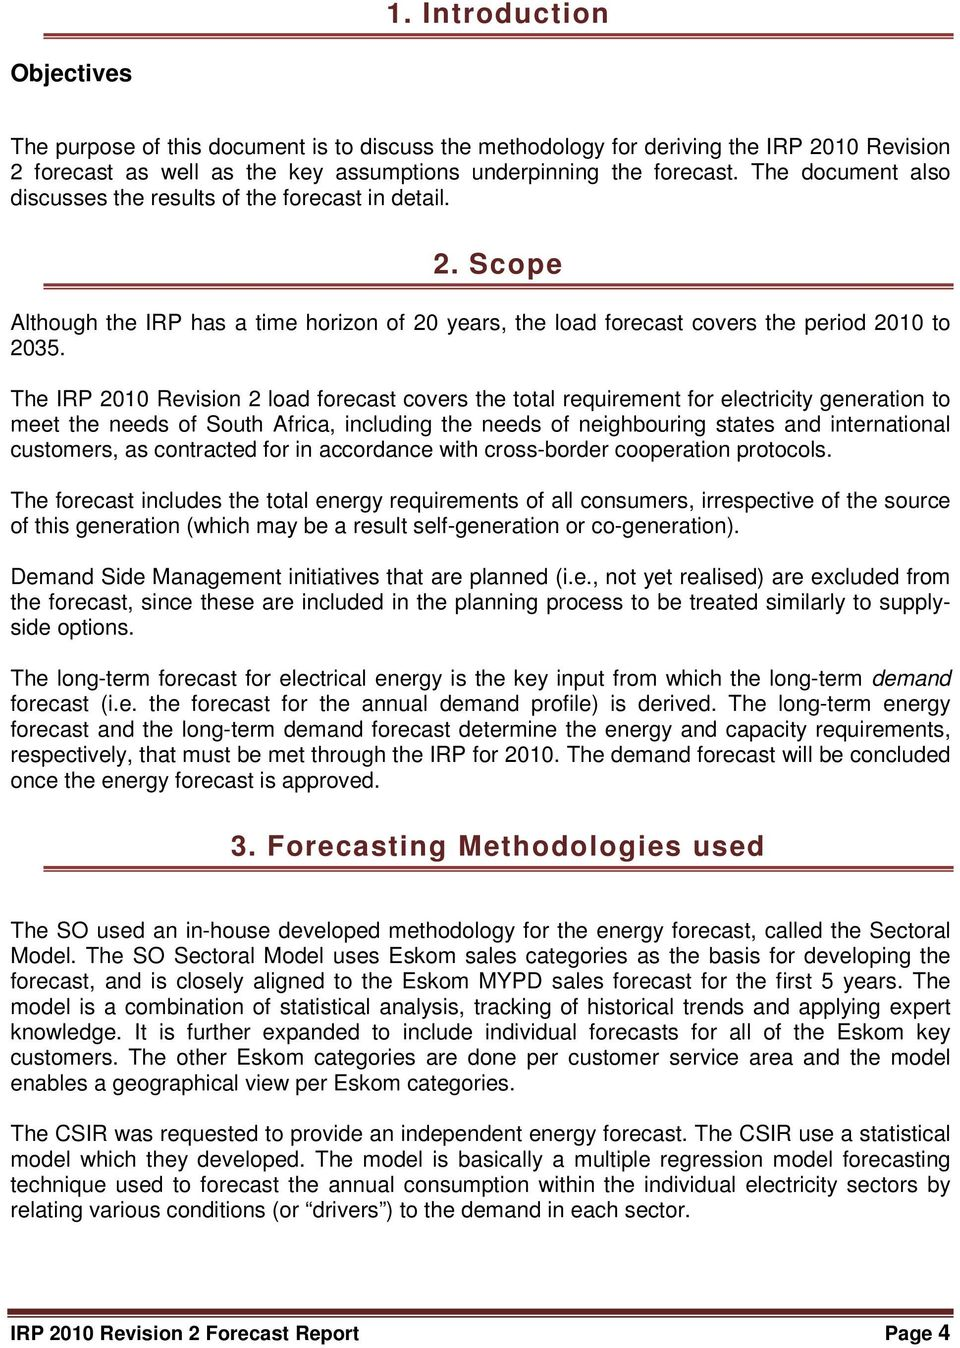 The IRP 2010 Revision 2 load forecast covers the total requirement for electricity generation to meet the needs of South Africa, including the needs of neighbouring states and international